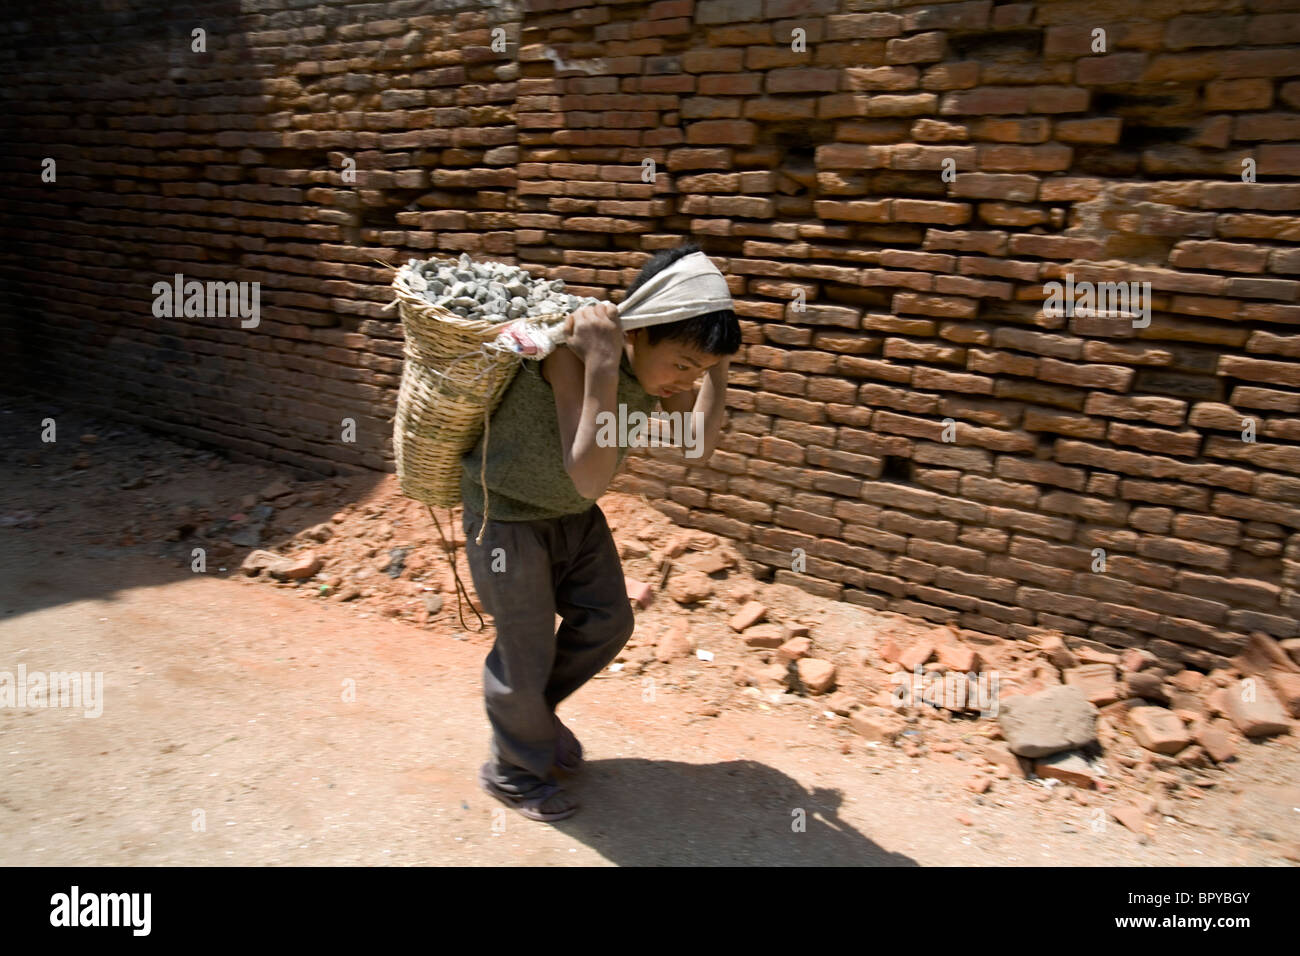 Young boy carrying stones with a basket over his head and shoulder, Bakthapur, Kathmandu, Nepal - Stock Image